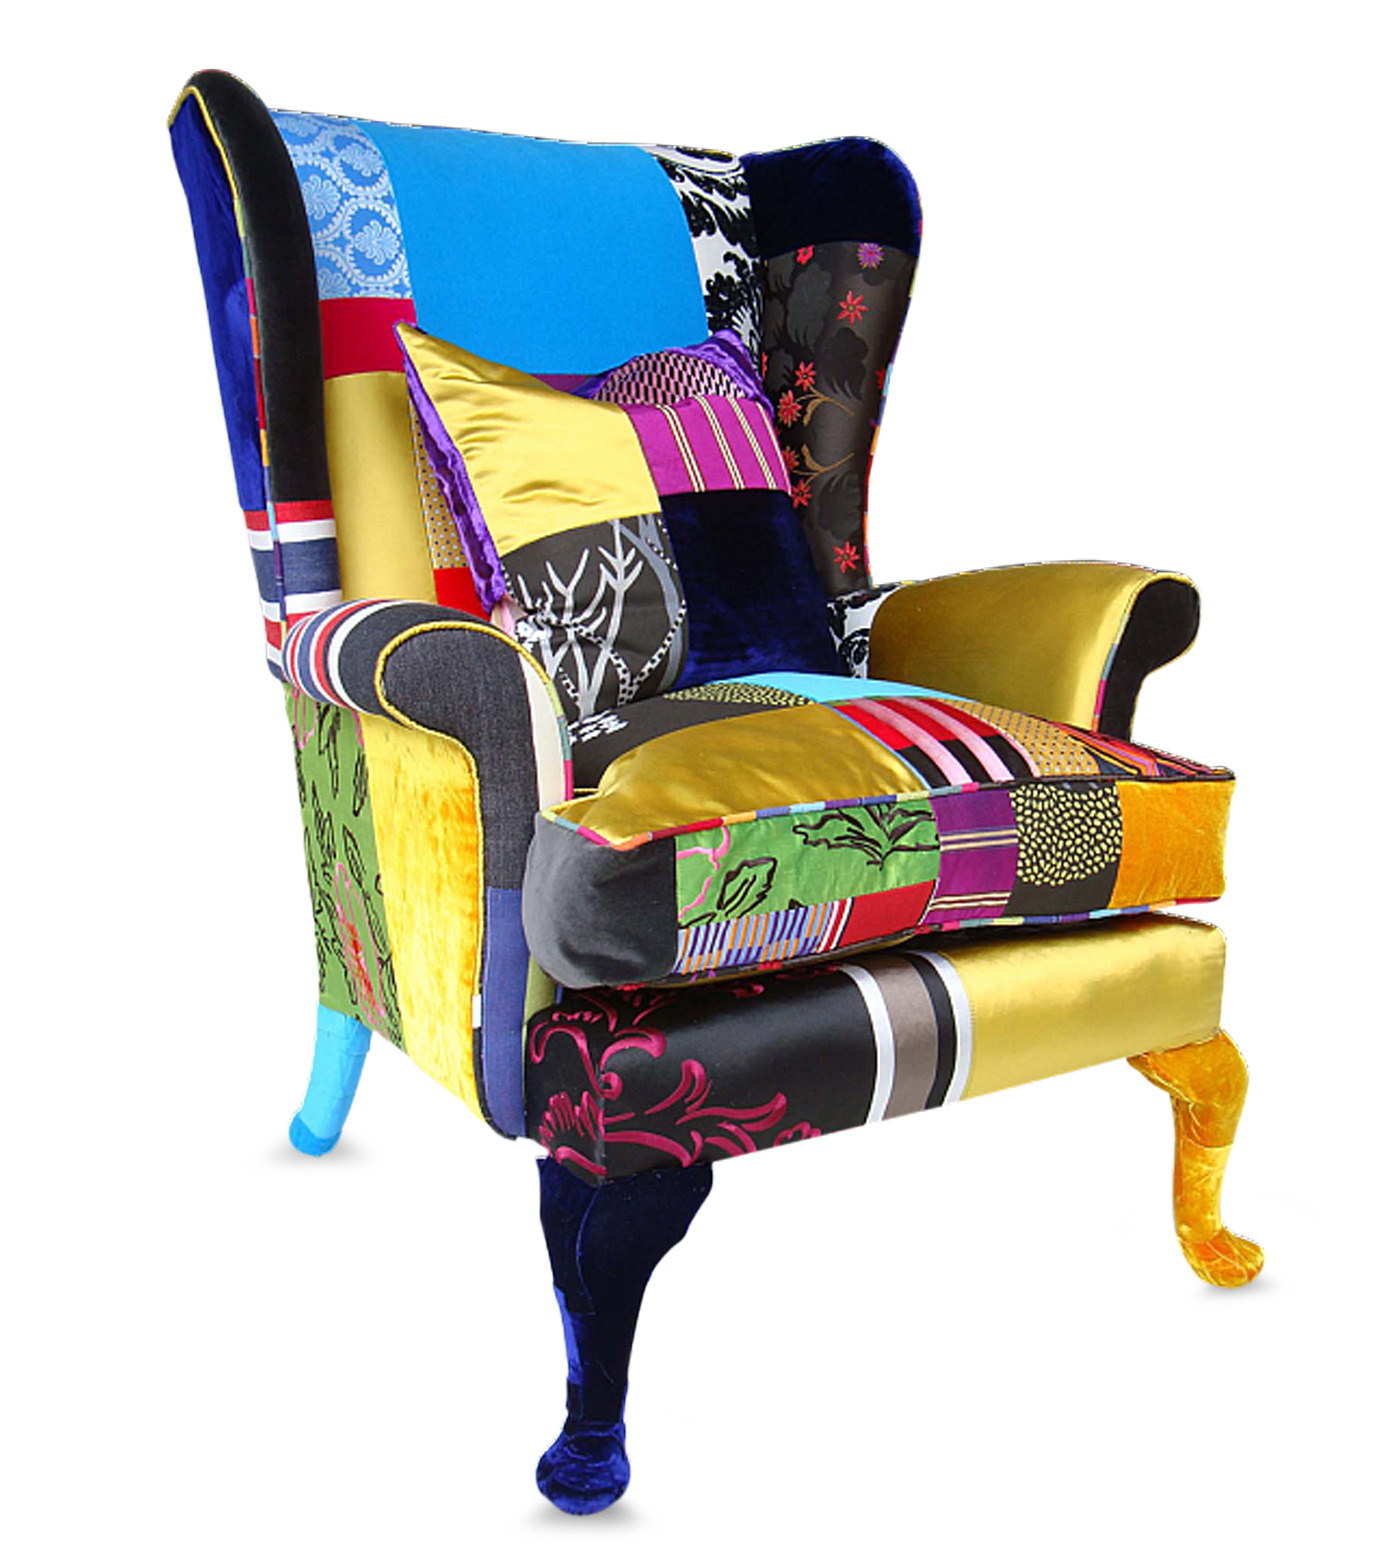 Squintlimited(スクイントリミテッド)のParker Knoll chair-NONE-11-0 拡大詳細画像2